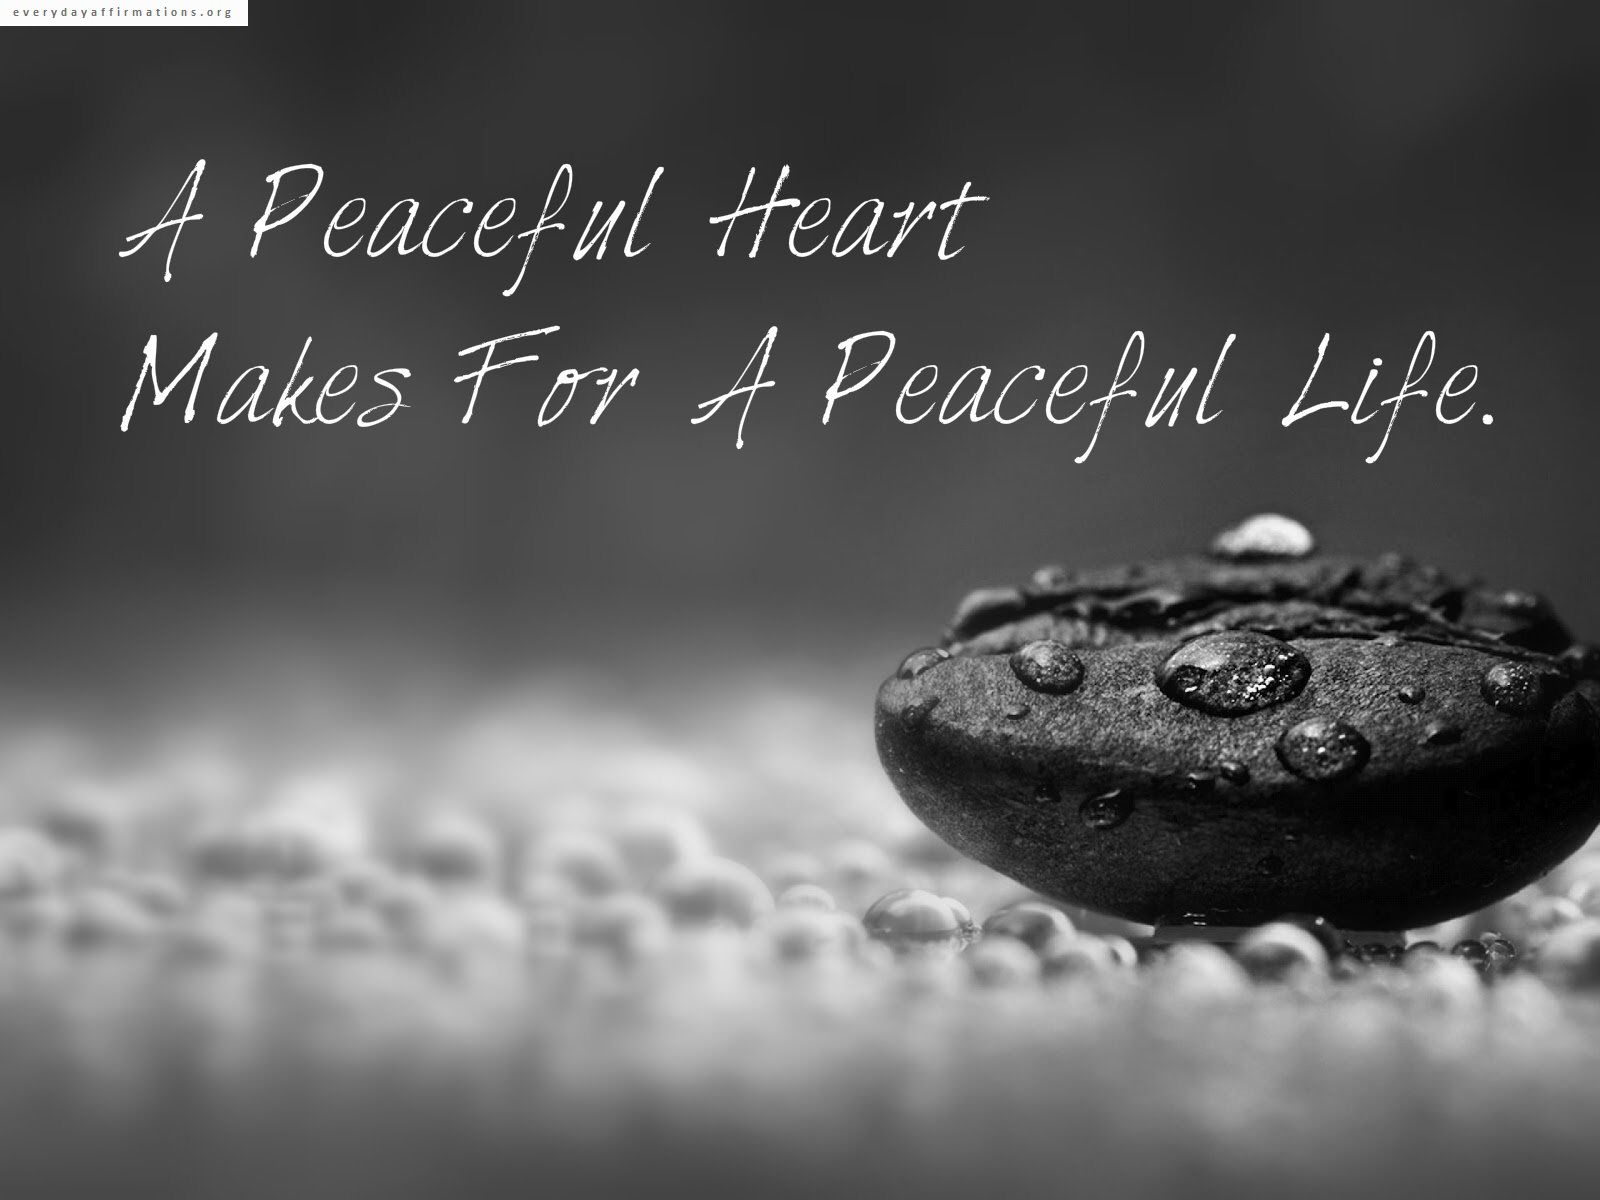 Peaceful Life Quotes Peaceful Life  Quotes  Pinterest  Morals